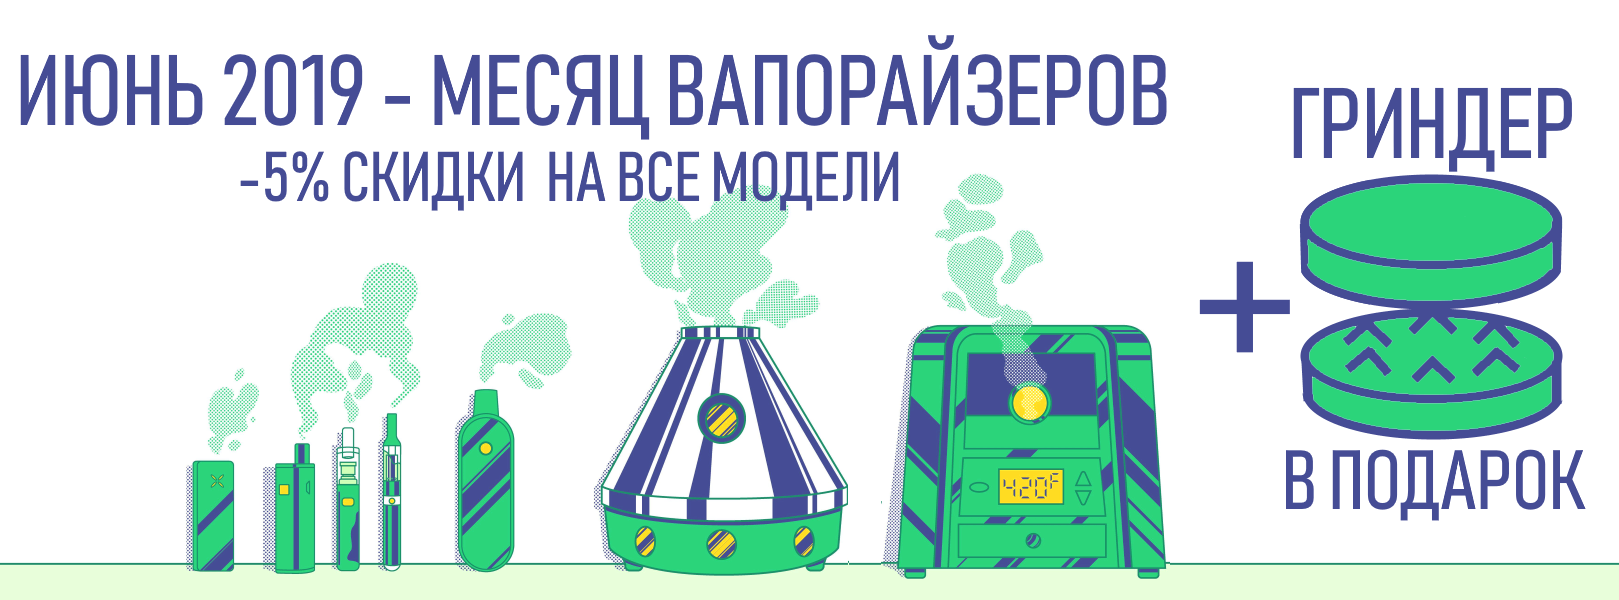 catalog/вапор4.png